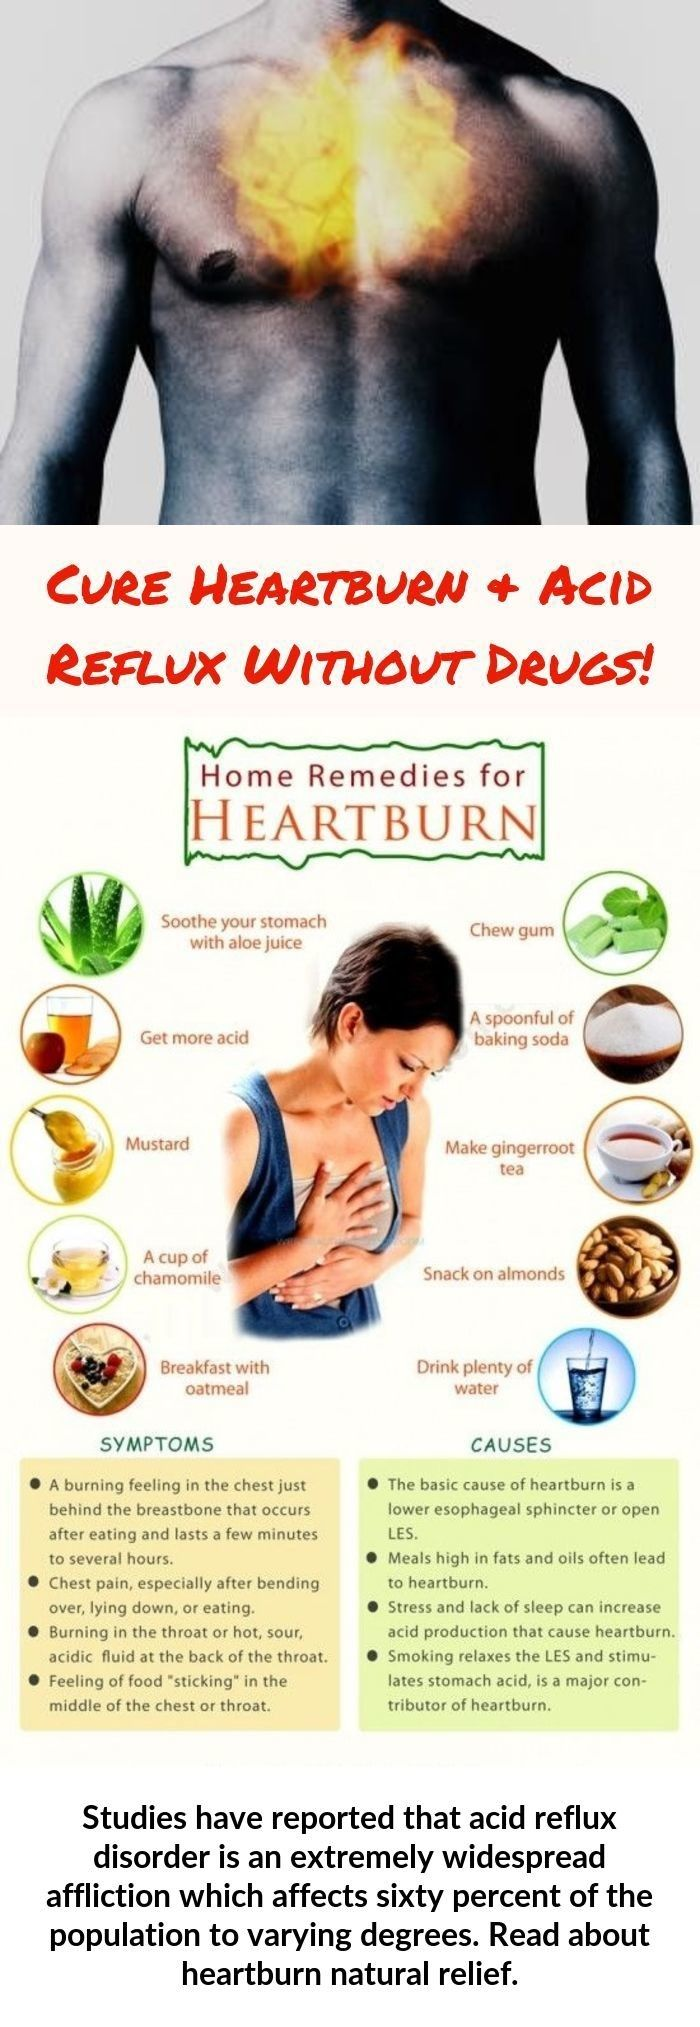 08aad9a5d6cb44d5c154312c15e8cc5d - How To Get Rid Of Heartburn And Chest Pain